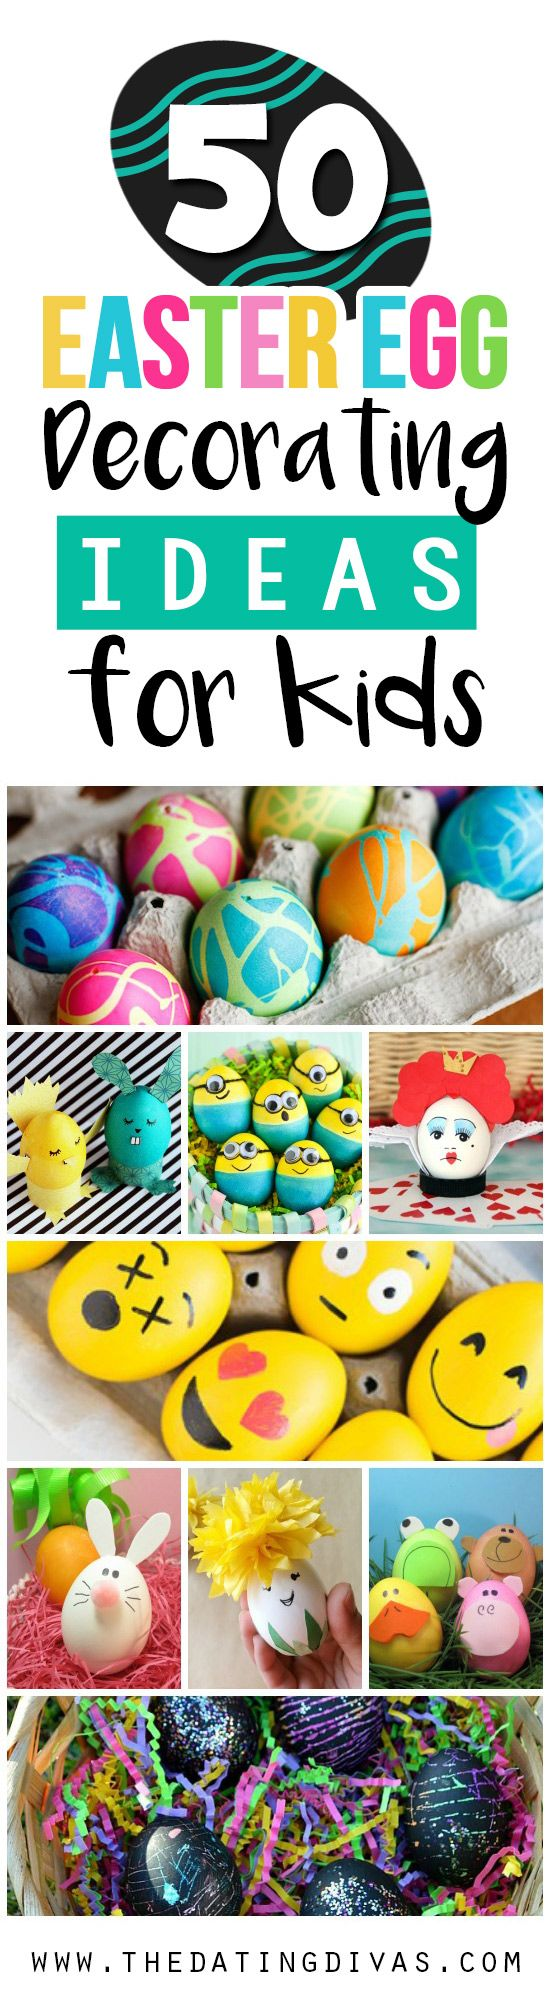 Tons of fun, creative, and easy Easter egg decorating ideas for kids.  We've got to try some of these!!  www.TheDatingDivas.com